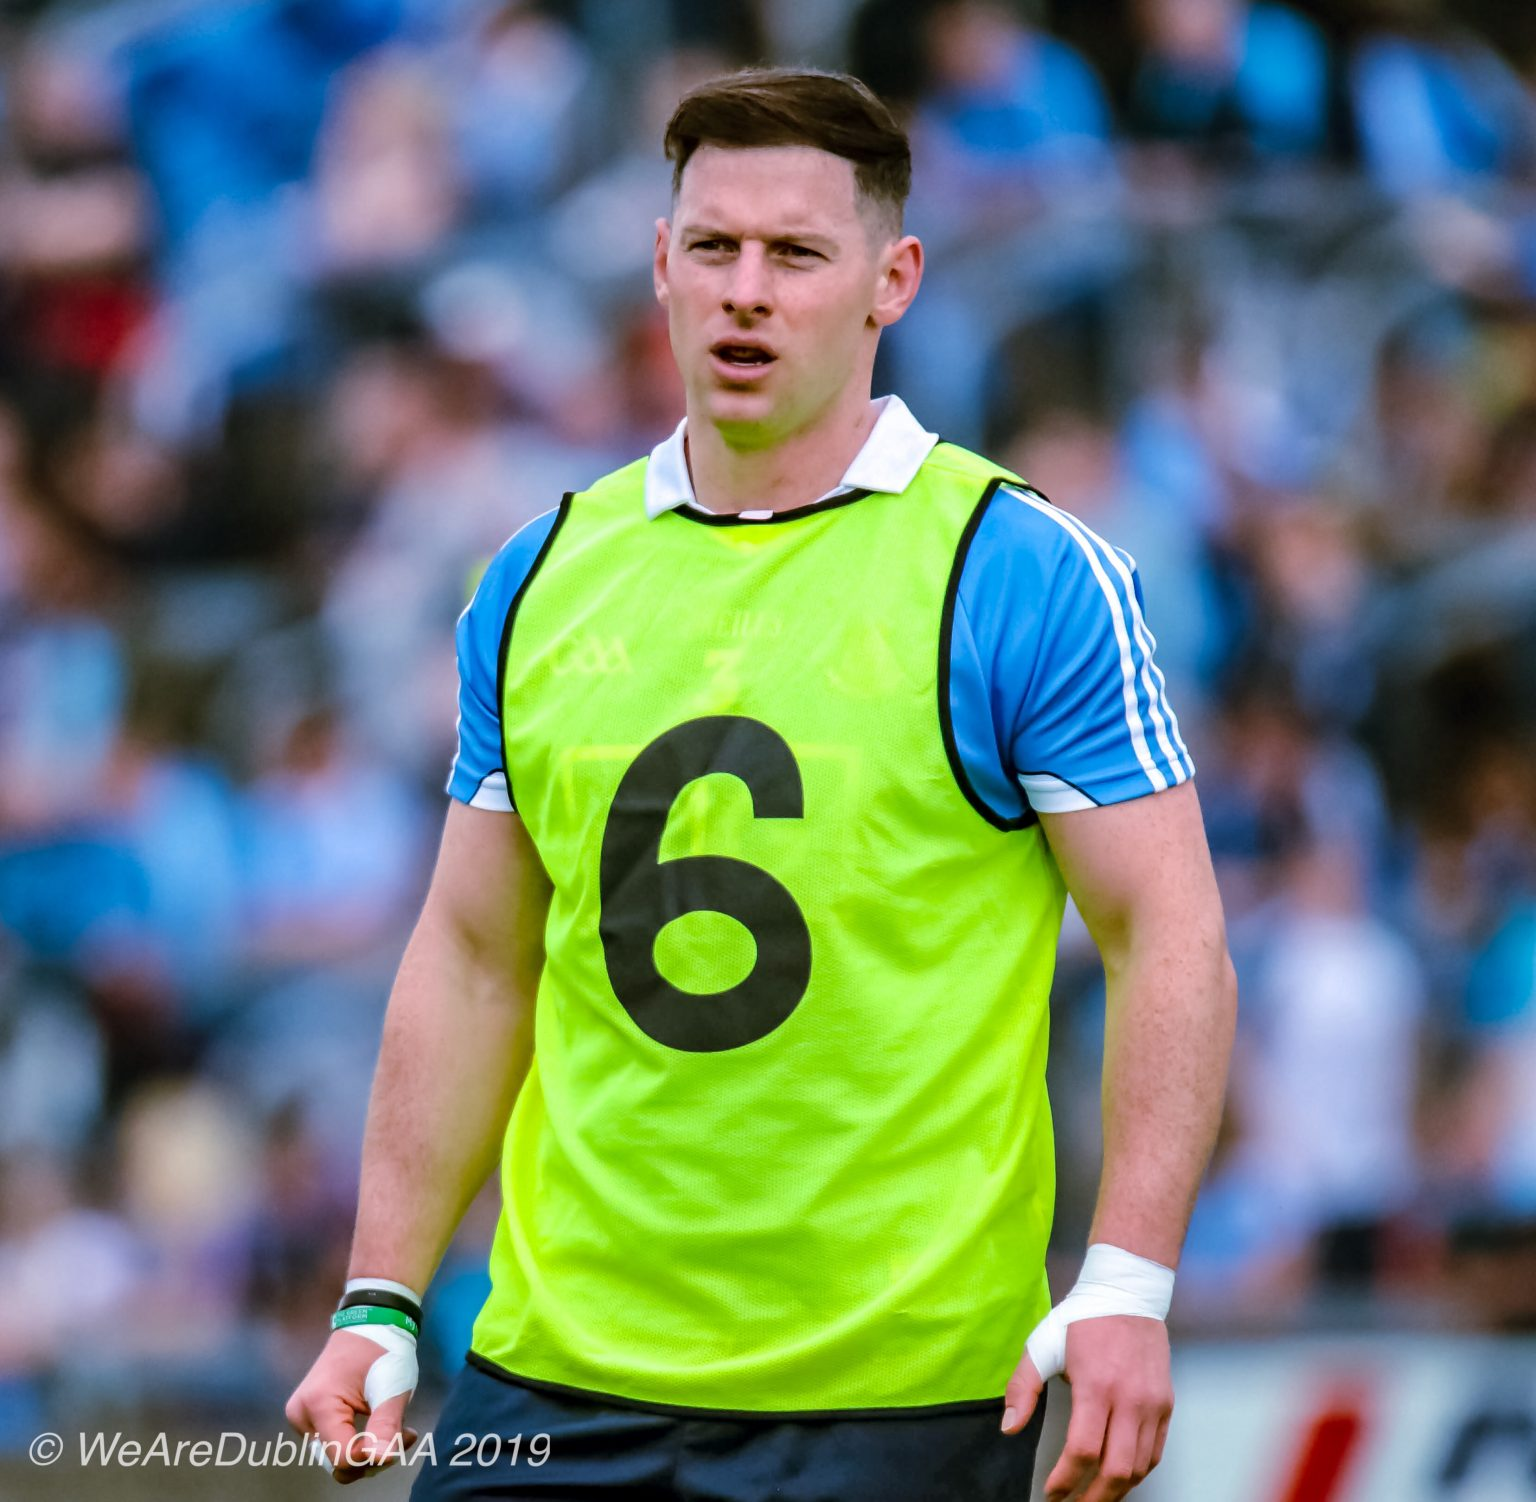 Dublin defender Philly McMahon in a sky blue jersey with a yellow bib over it with the number six on the front and navy shorts